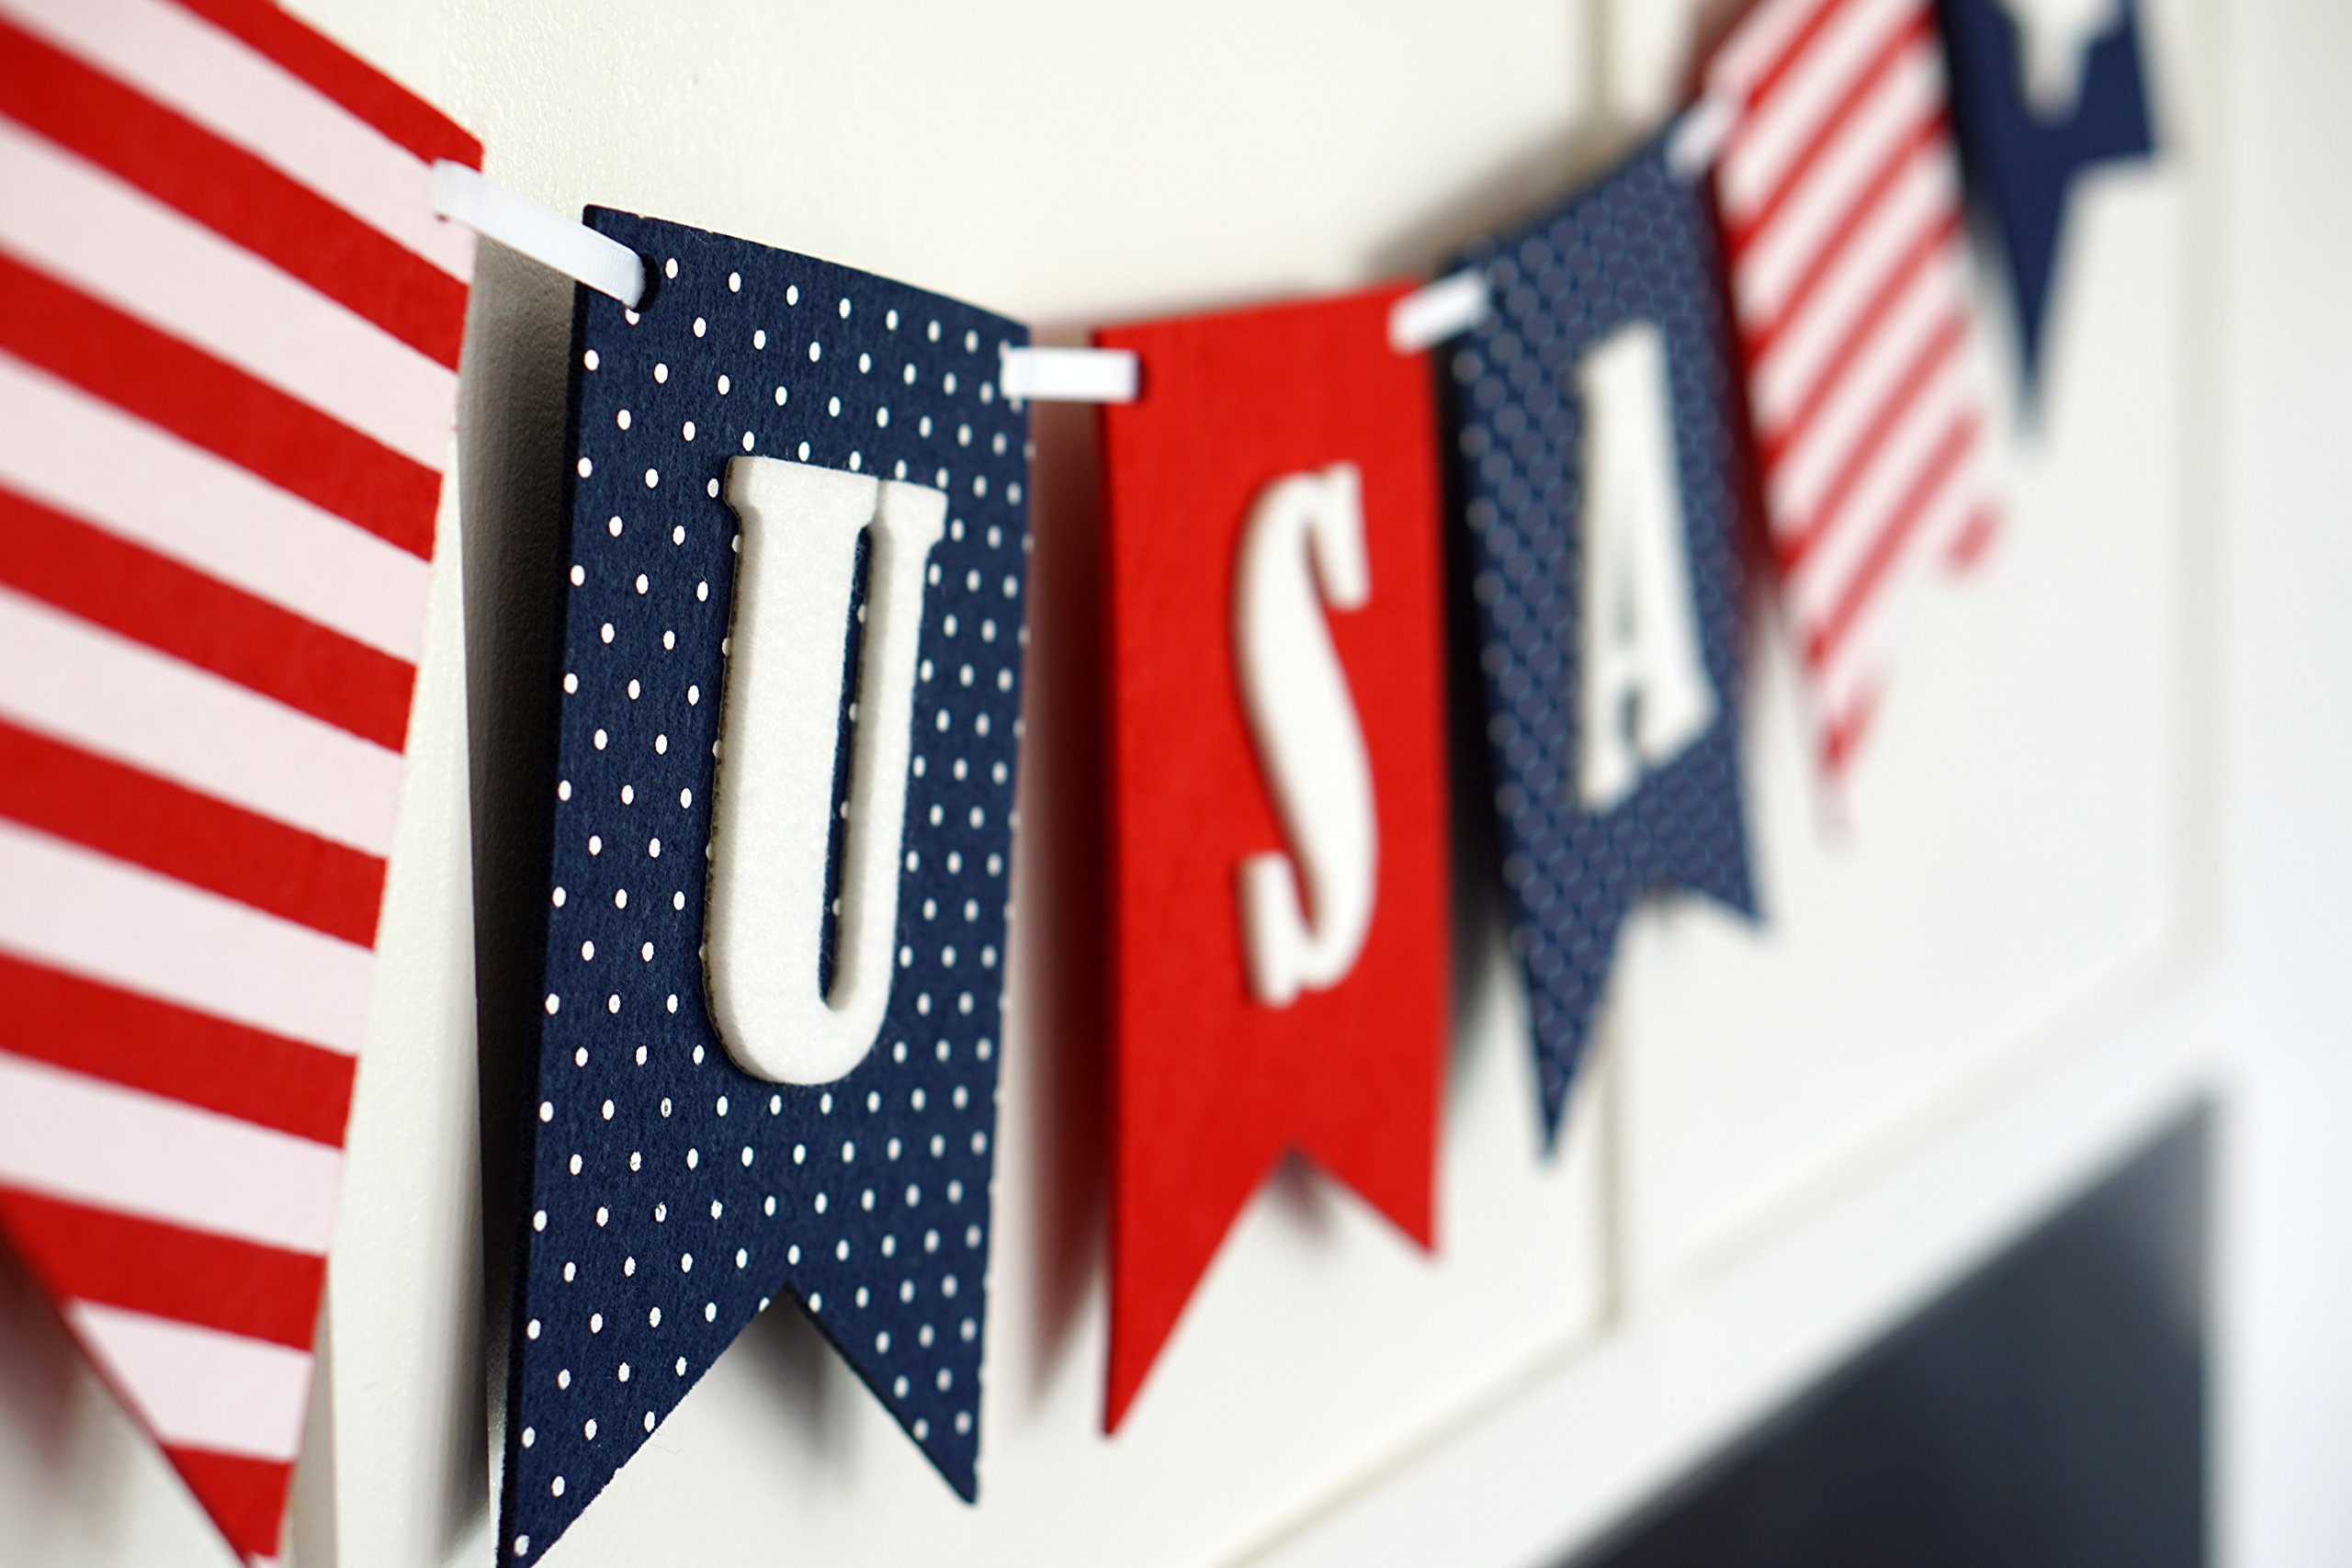 USA Banner Bunting Laser Cut Felt 40 inches wide - Patriotic Americana Red, White, & Blue America! by Decomod (Image #6)